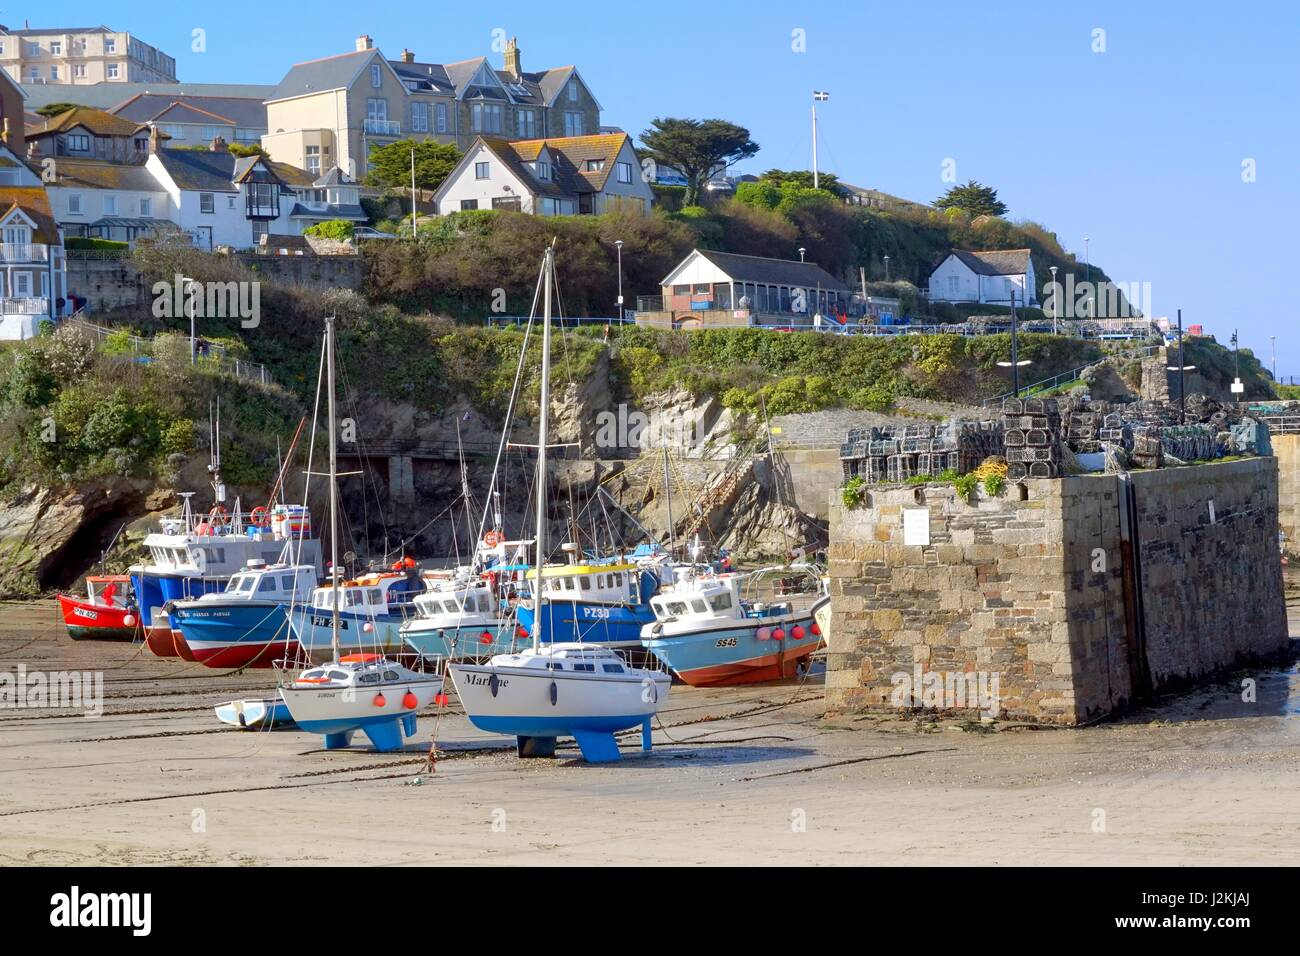 Newquay, Cornwall, UK - April 1 2017: Colourful fishing and sailing boats on the sand in Newquay harbour at low Stock Photo